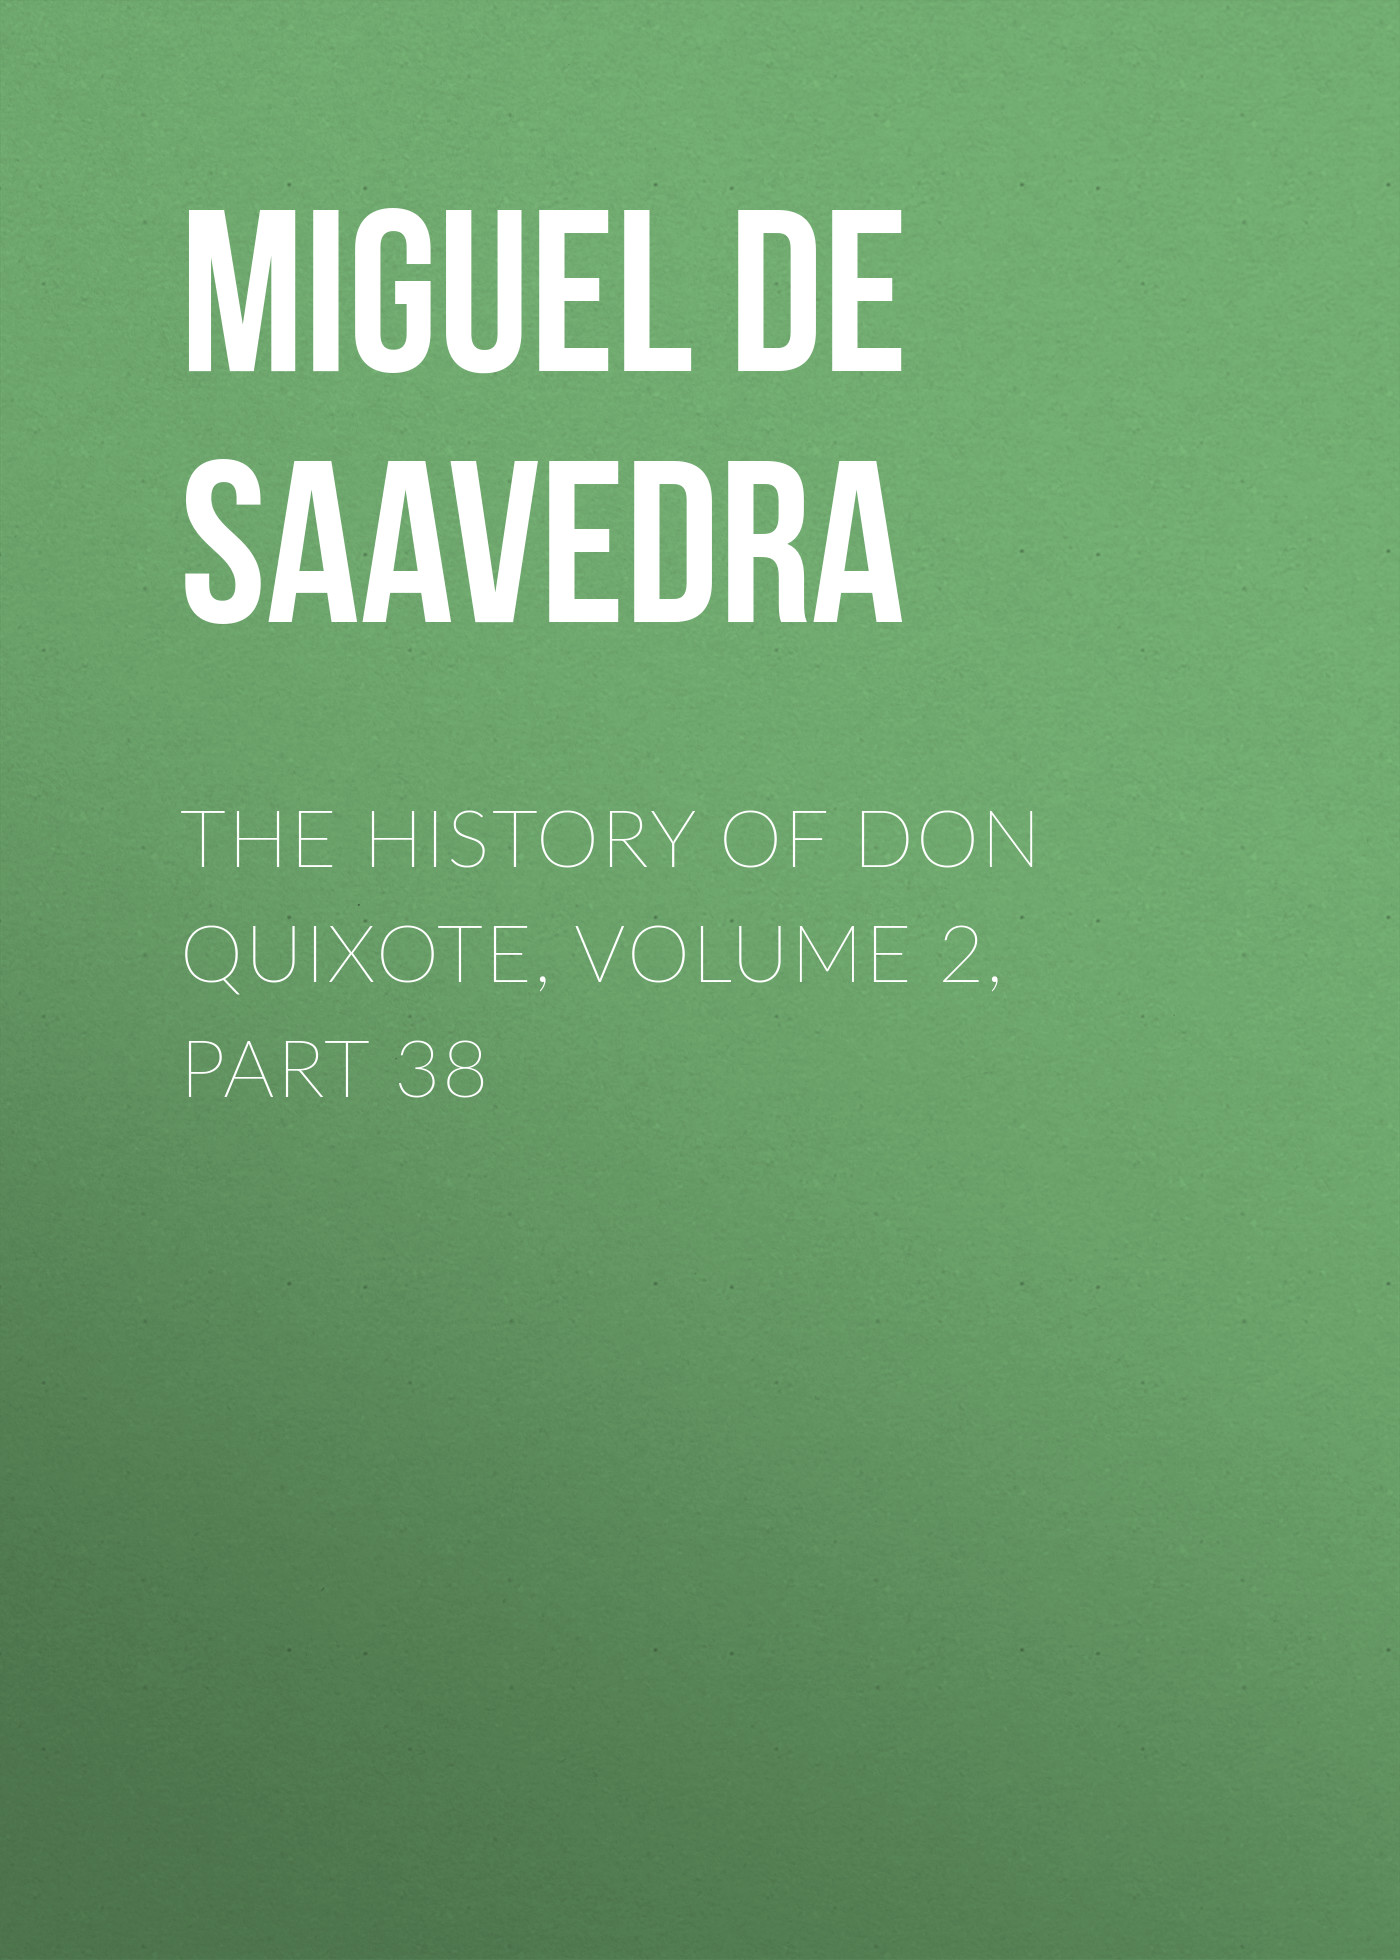 the history of don quixote volume 2 part 38